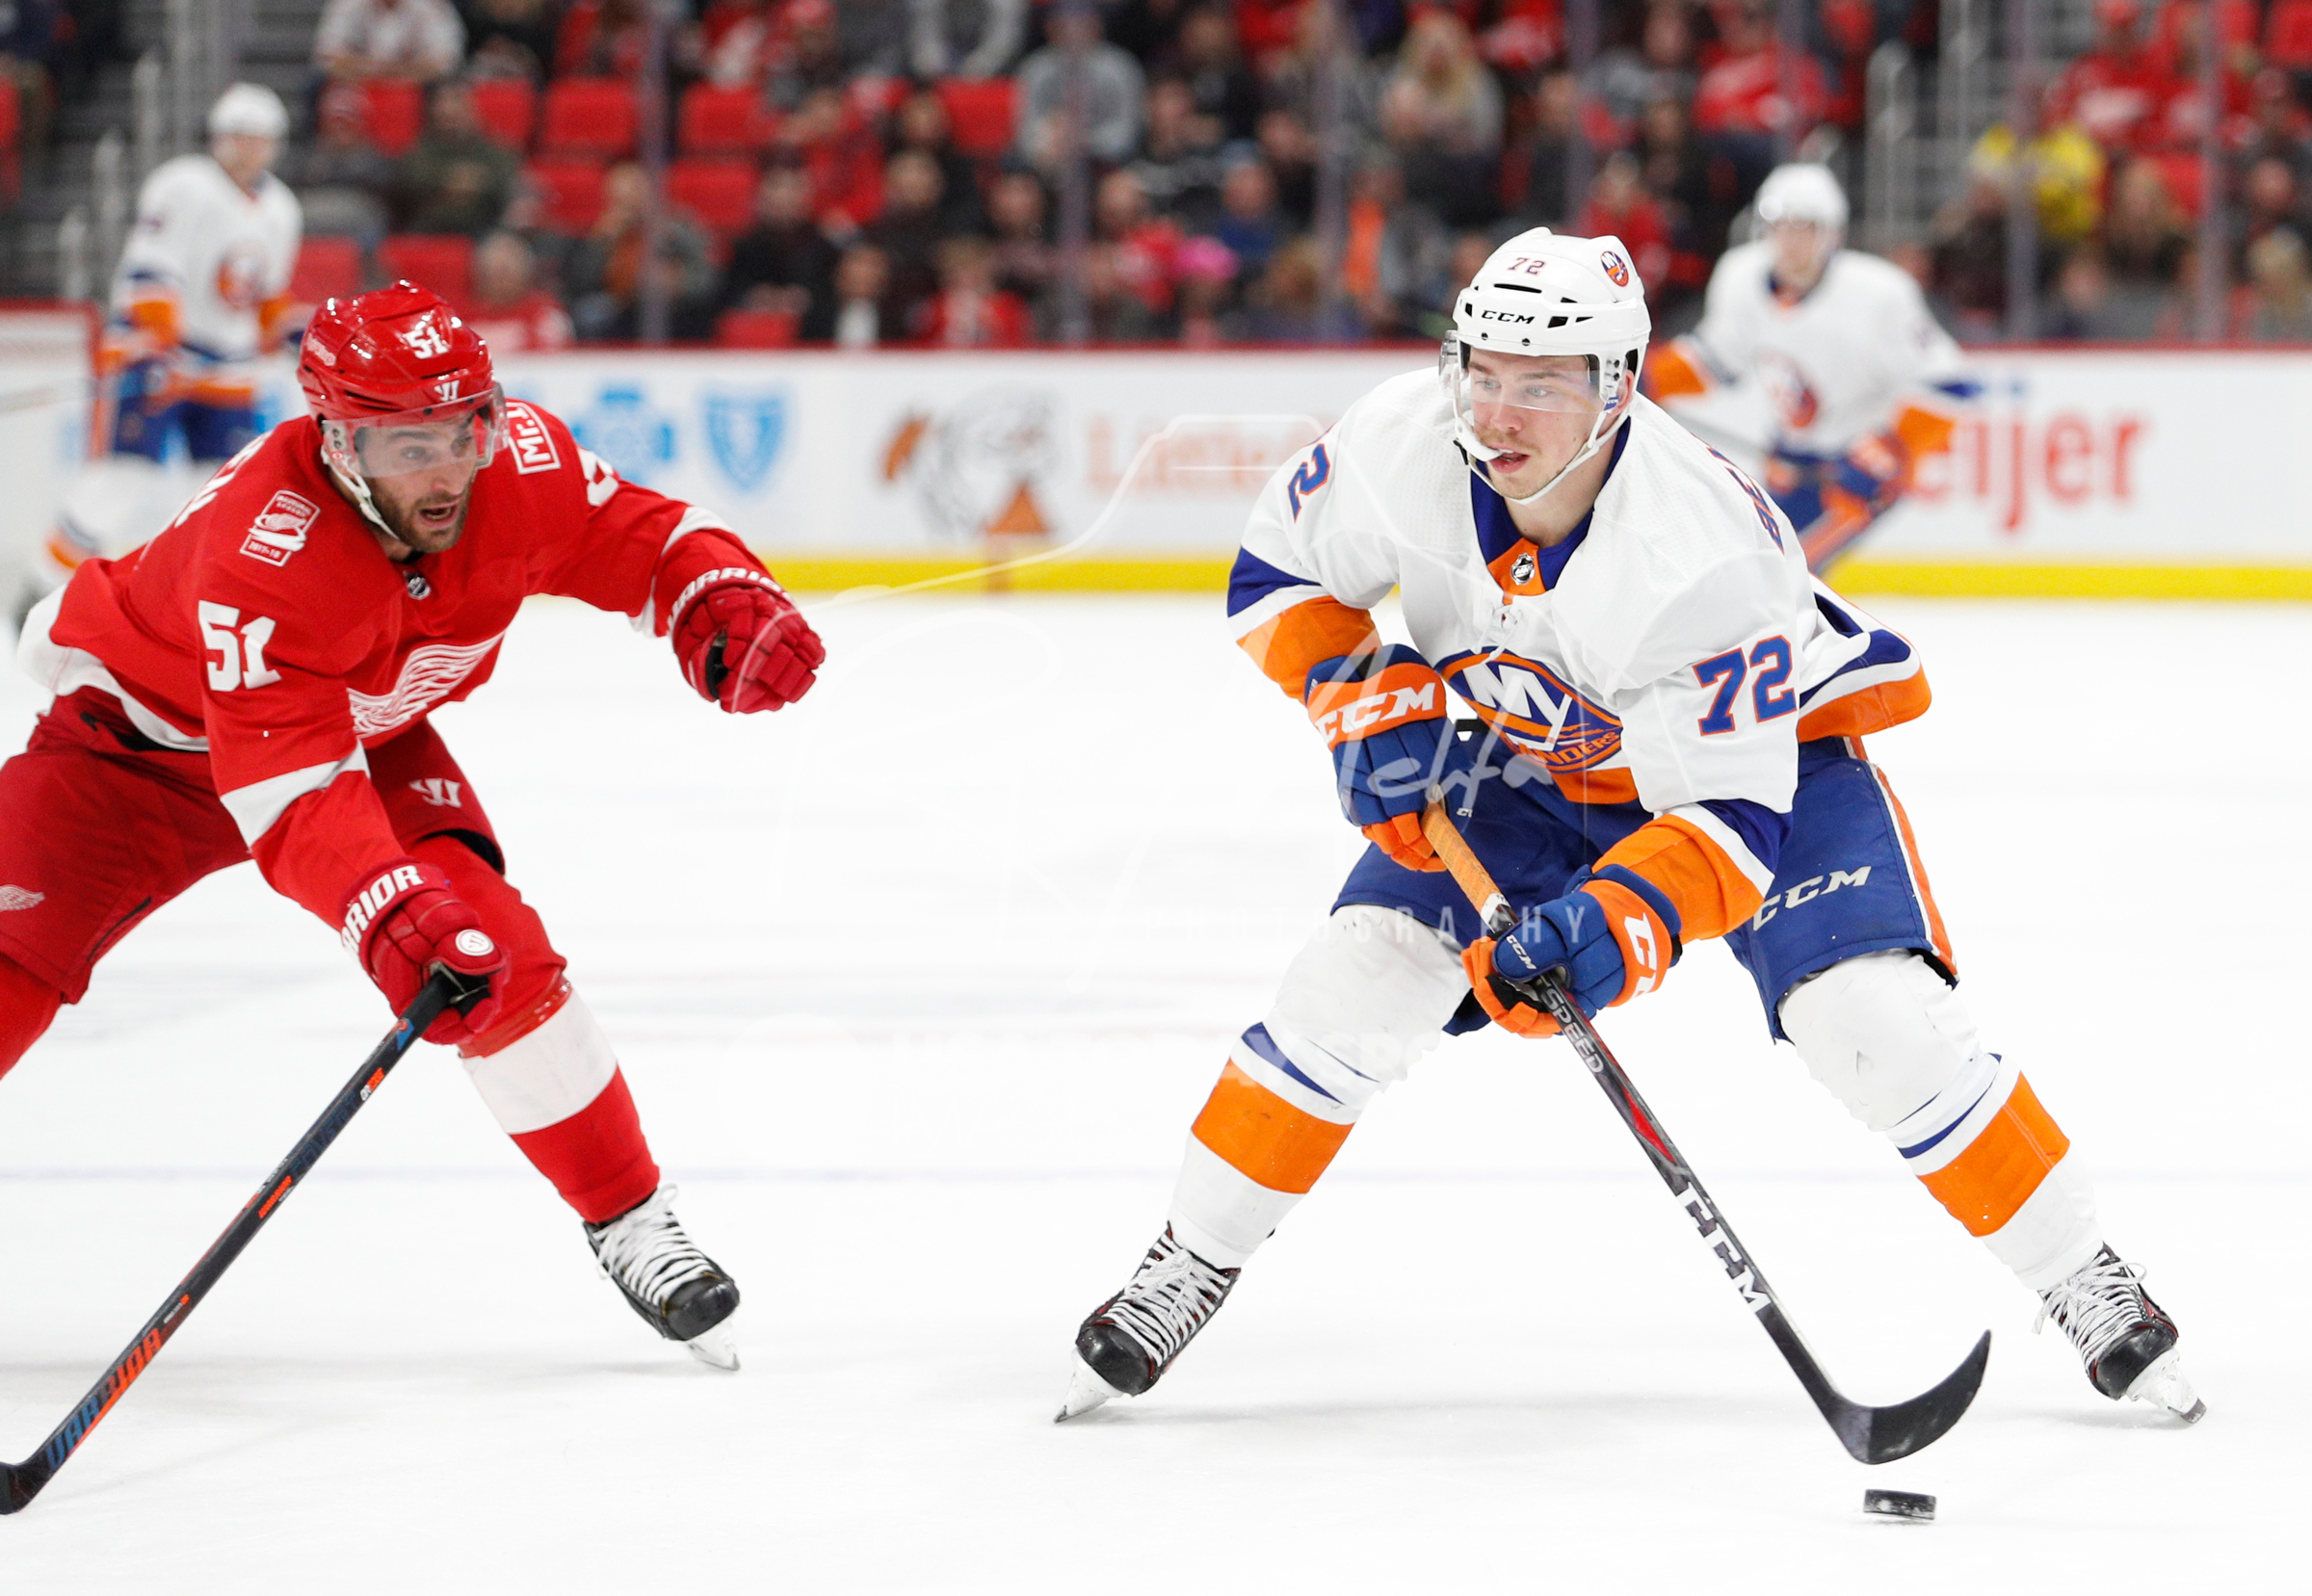 Apr 7, 2018; Detroit, MI, USA; New York Islanders center Anthony Beauvillier (72) skates with the puck against Detroit Red Wings center Frans Nielsen (51) during the first period at Little Caesars Arena. Mandatory Credit: Raj Mehta-USA TODAY Sports